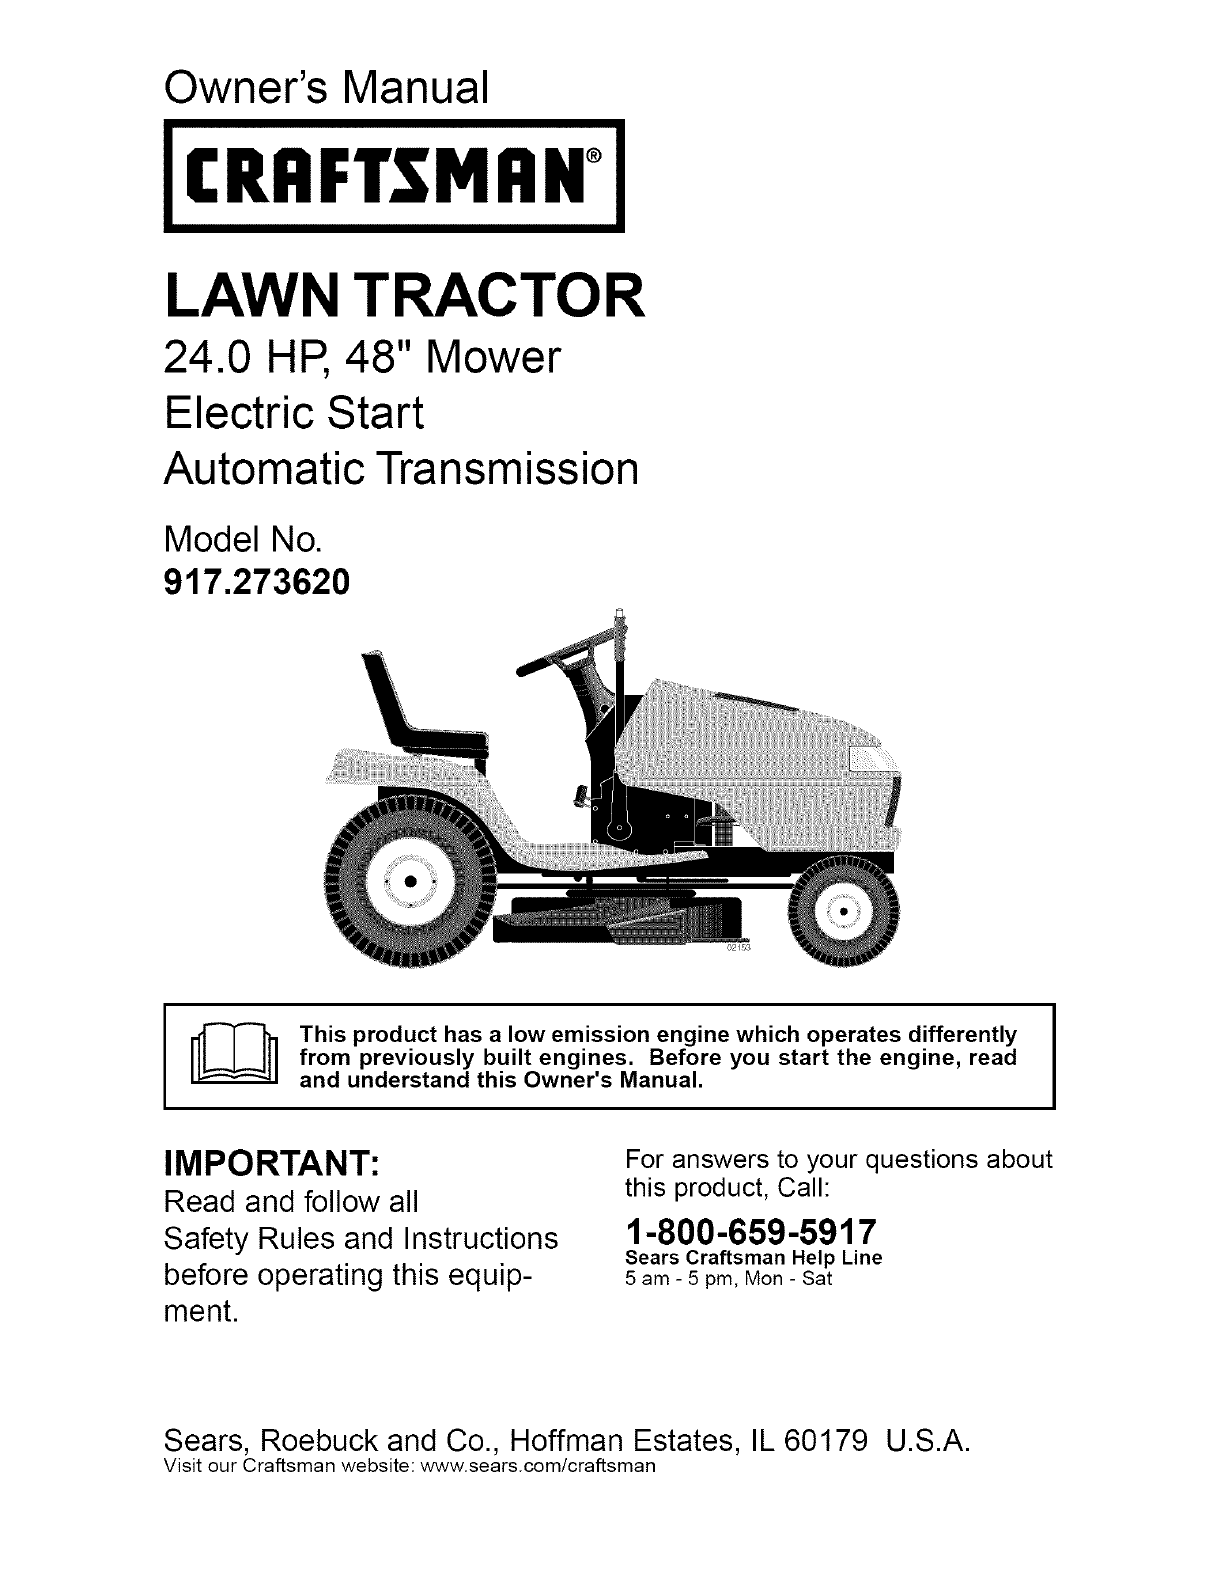 Craftsman 917273620 User Manual Lawn Tractor Manuals And Guides L0409676 Electric Leaf Blower Wiring Diagram Owners